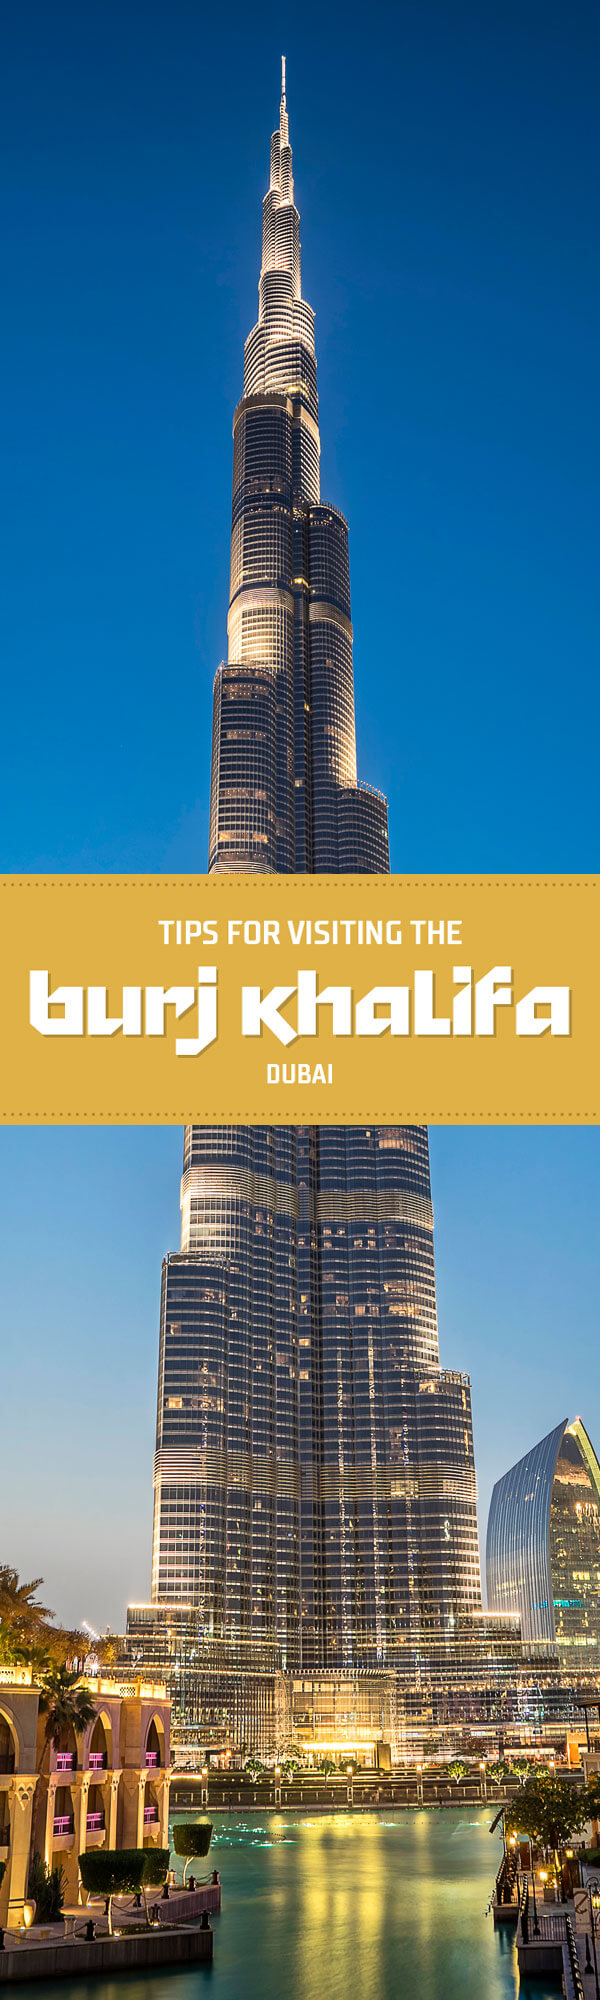 Tips for Visiting the Burj Khalifa